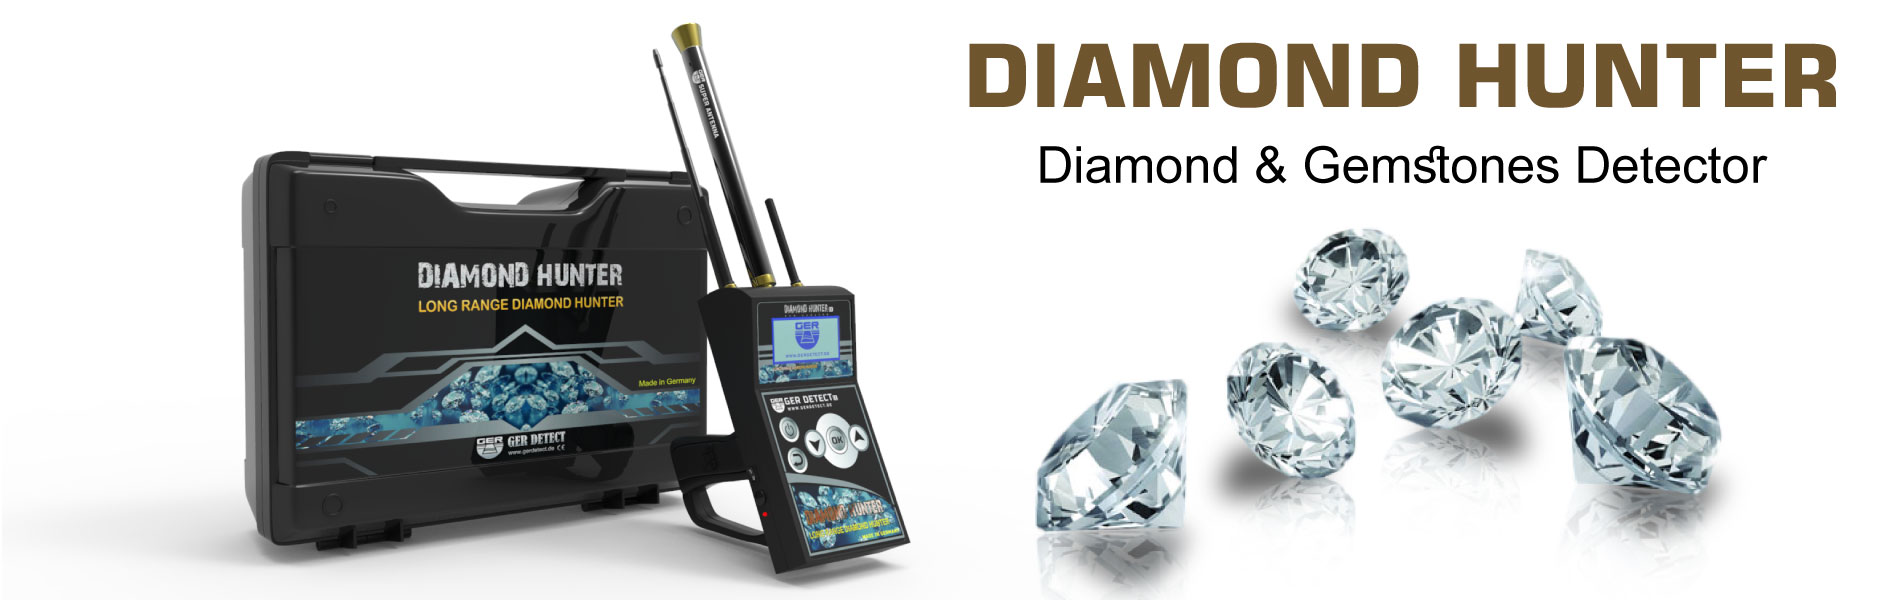 diamond hunter long range gemstone detector